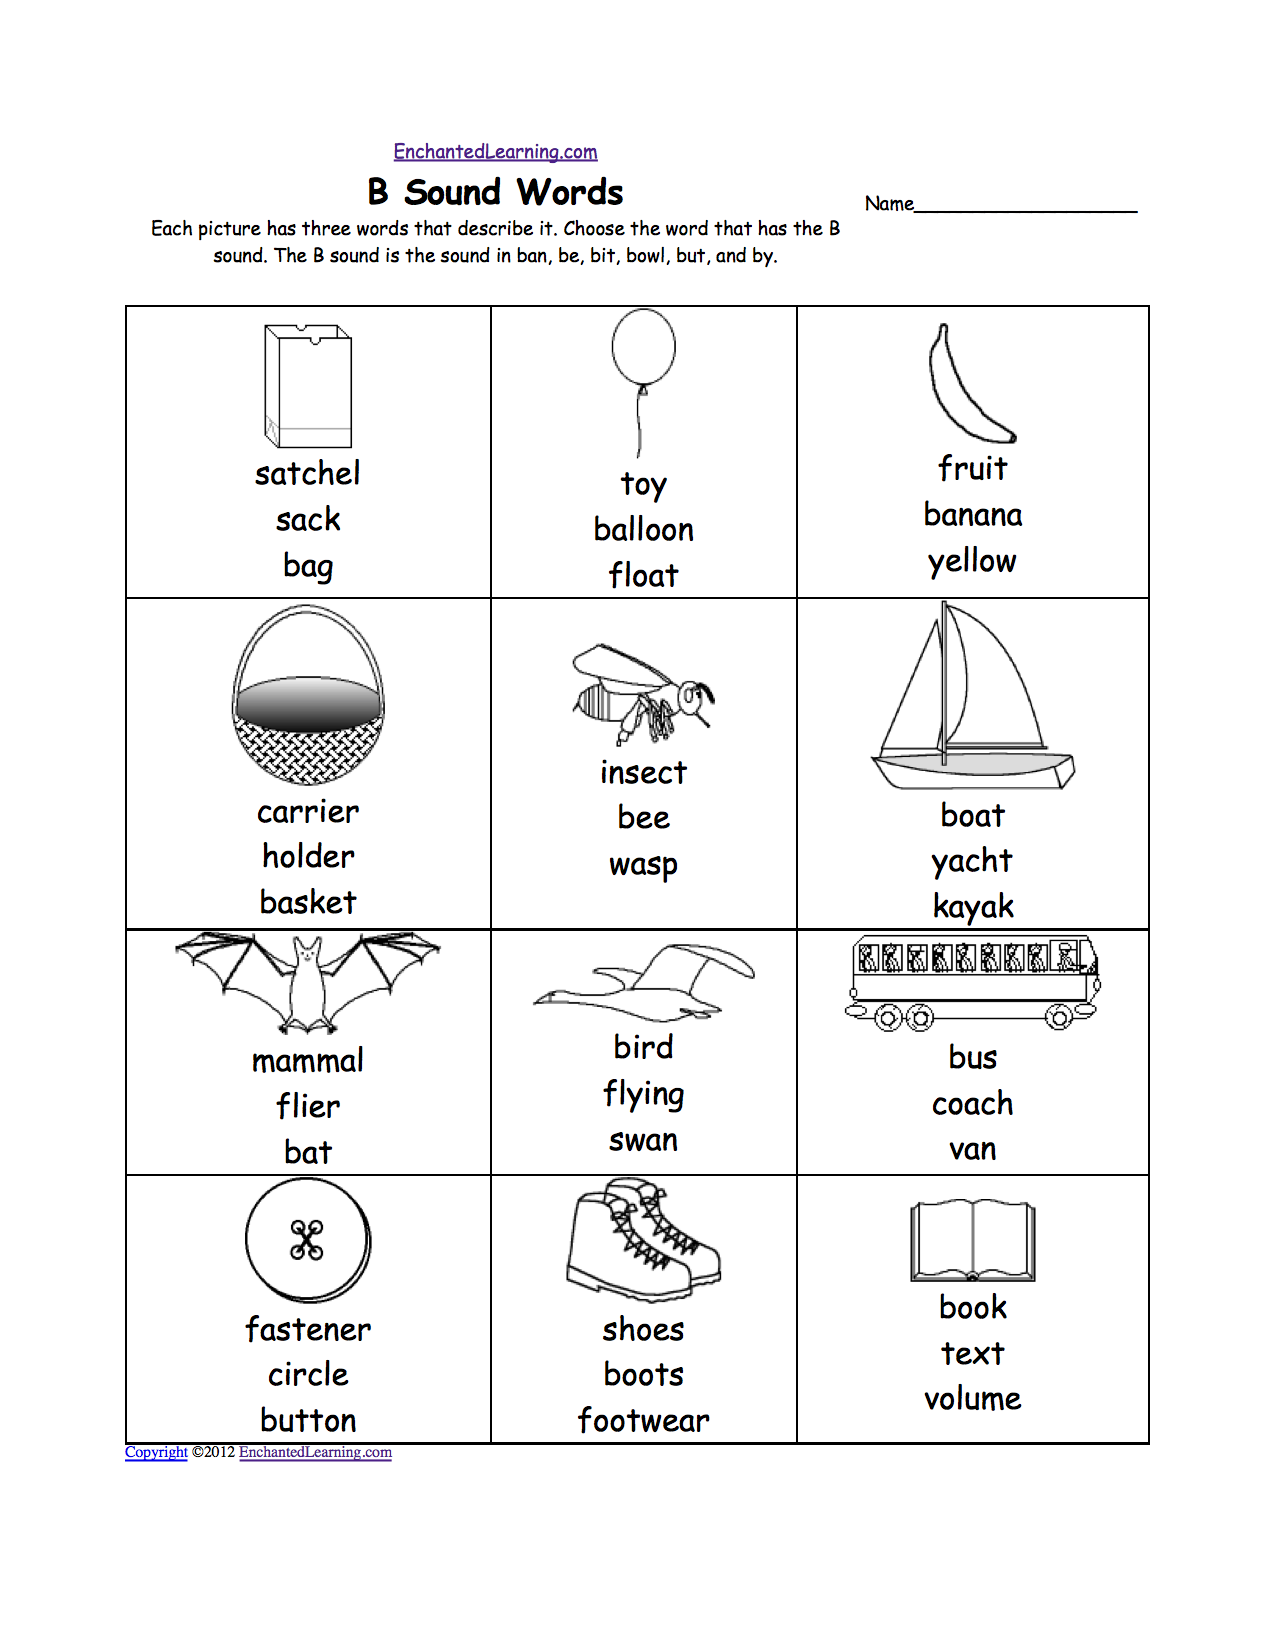 Proatmealus  Winsome Phonics Worksheets Multiple Choice Worksheets To Print  With Heavenly Quotbquot Sound Phonics Worksheet Multiple Choice Each Picture Has Three Words That Describe It Choose The Word That Has A Quotbquot Sound The Quotbquot Sound Is The Sound  With Beautiful Letter A Handwriting Worksheet Also Numbers  Worksheets Kindergarten In Addition Reading Comprehension Worksheets For Grade  And Grade  Mathematics Worksheets As Well As Triangular Numbers Worksheets Additionally Free Science Reading Comprehension Worksheets From Enchantedlearningcom With Proatmealus  Heavenly Phonics Worksheets Multiple Choice Worksheets To Print  With Beautiful Quotbquot Sound Phonics Worksheet Multiple Choice Each Picture Has Three Words That Describe It Choose The Word That Has A Quotbquot Sound The Quotbquot Sound Is The Sound  And Winsome Letter A Handwriting Worksheet Also Numbers  Worksheets Kindergarten In Addition Reading Comprehension Worksheets For Grade  From Enchantedlearningcom